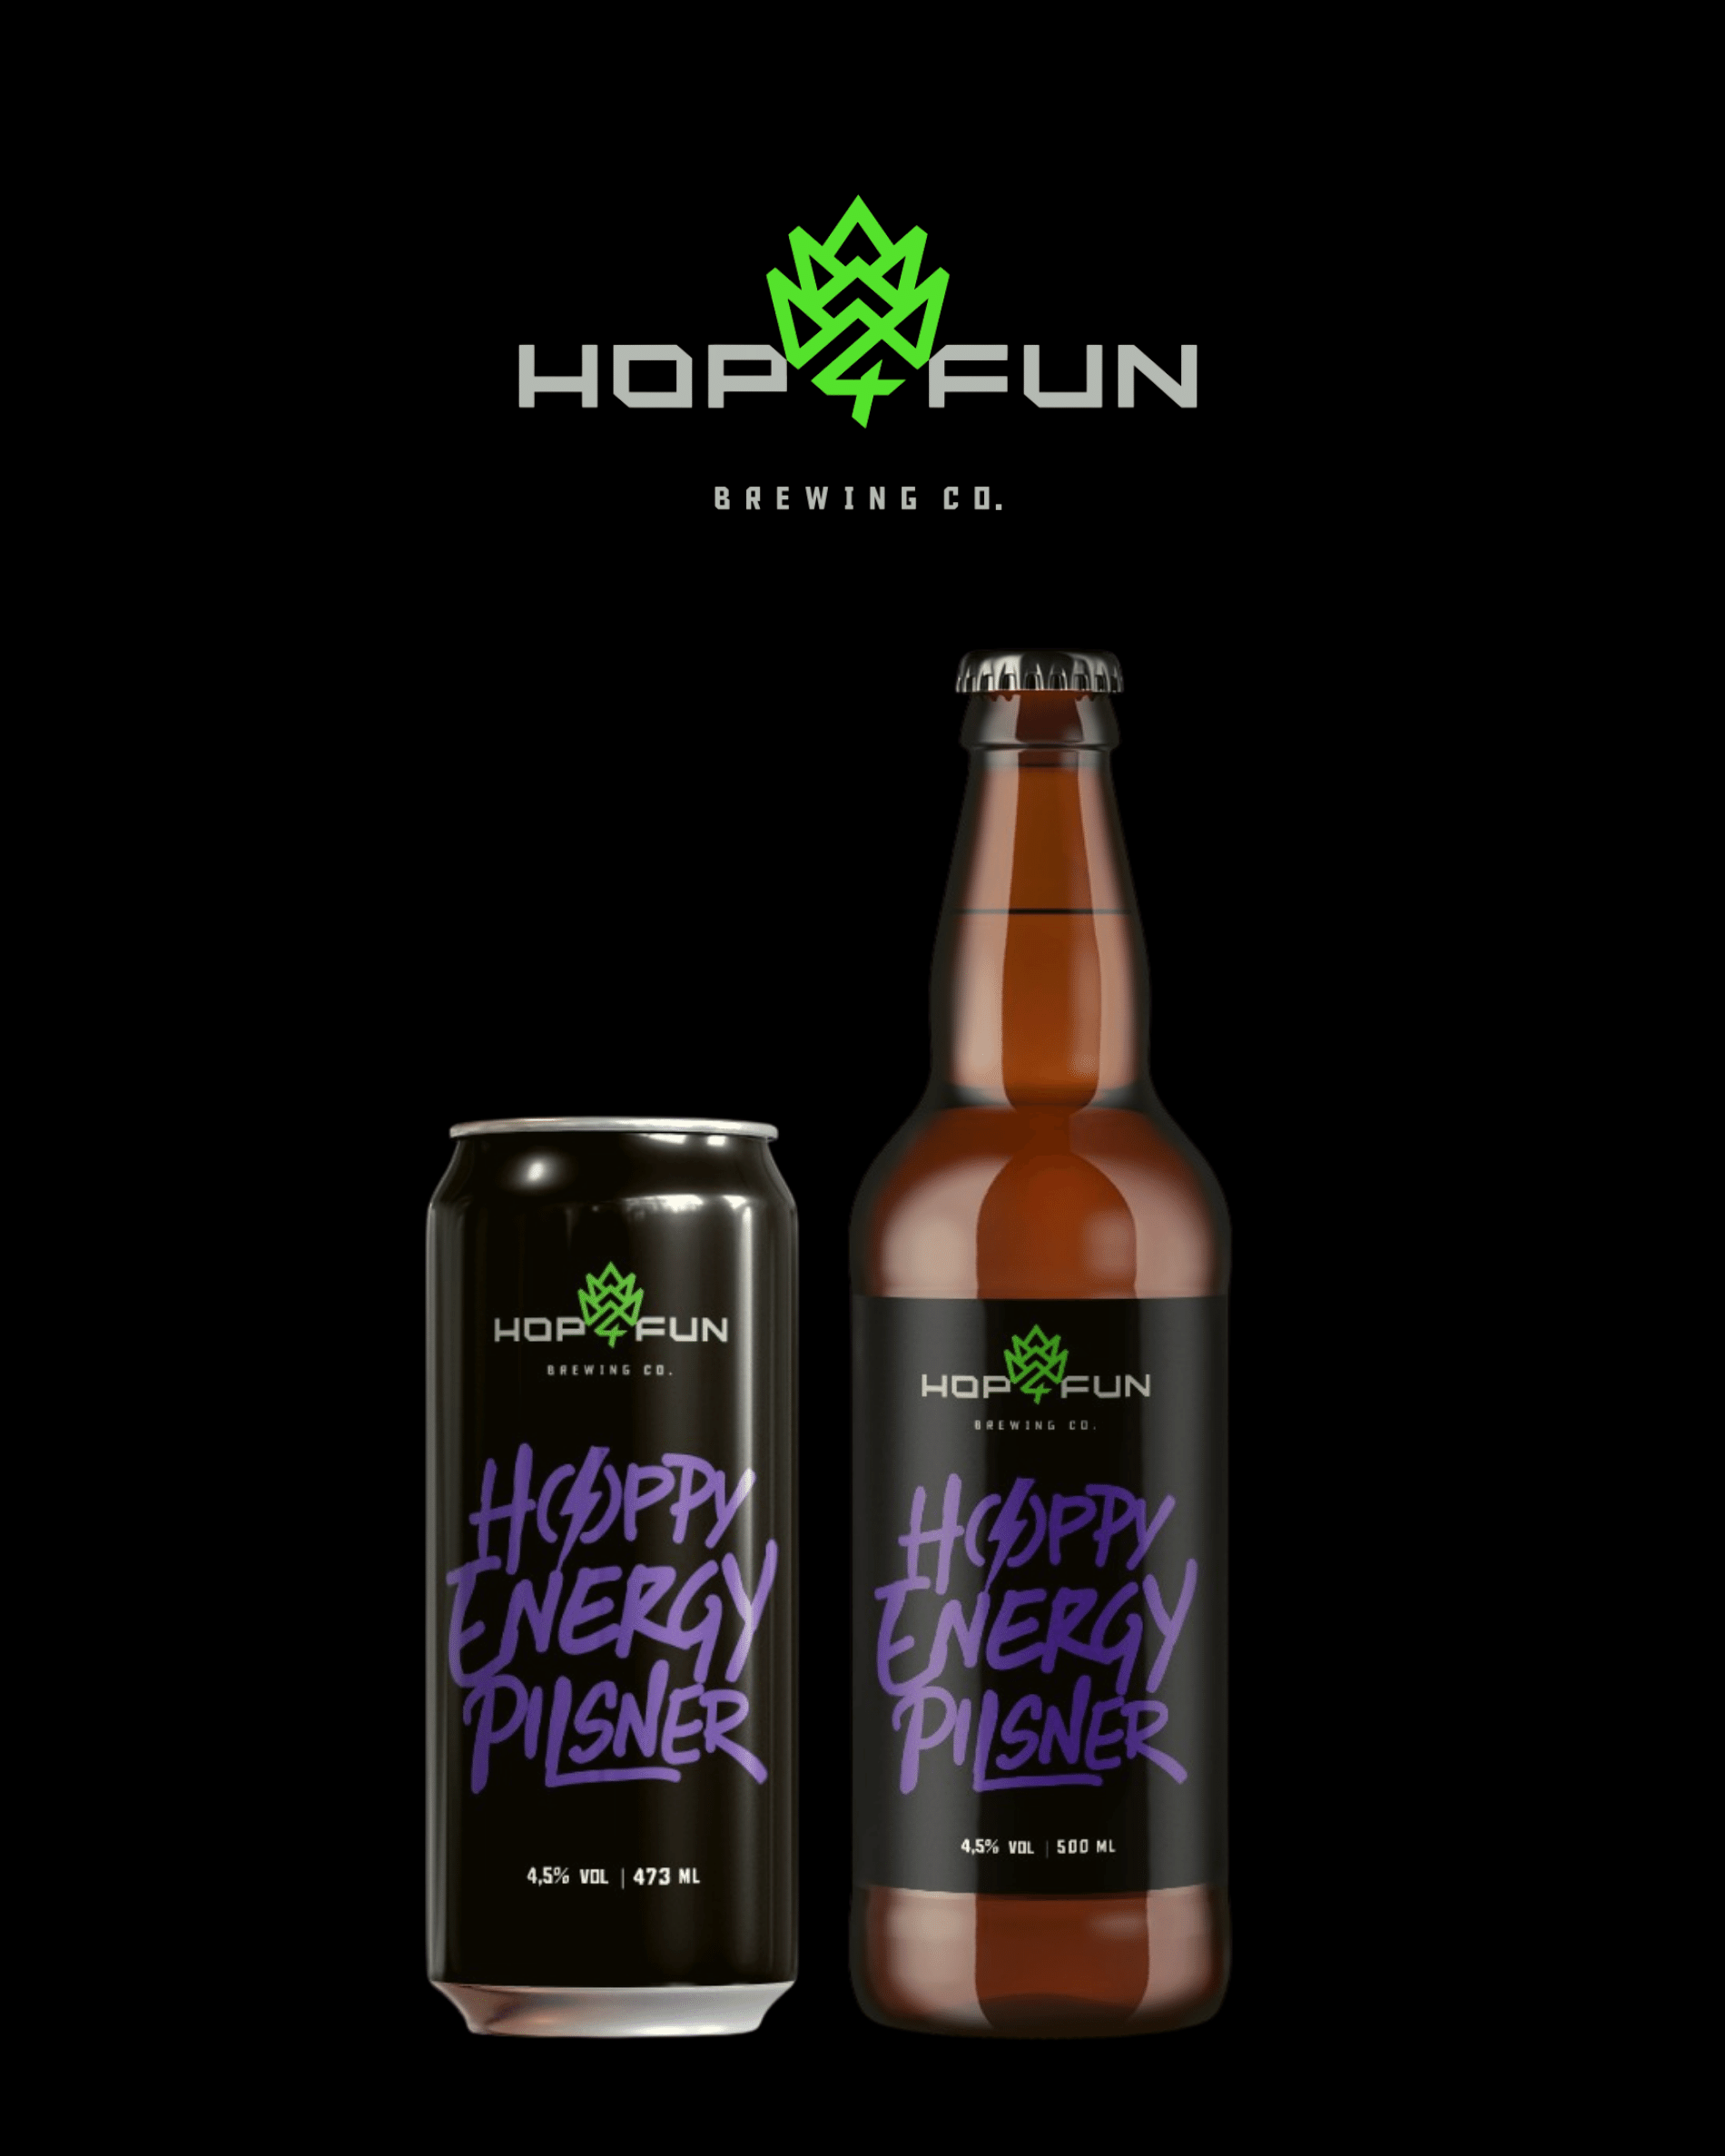 Hoppy Energy Pilsener 2